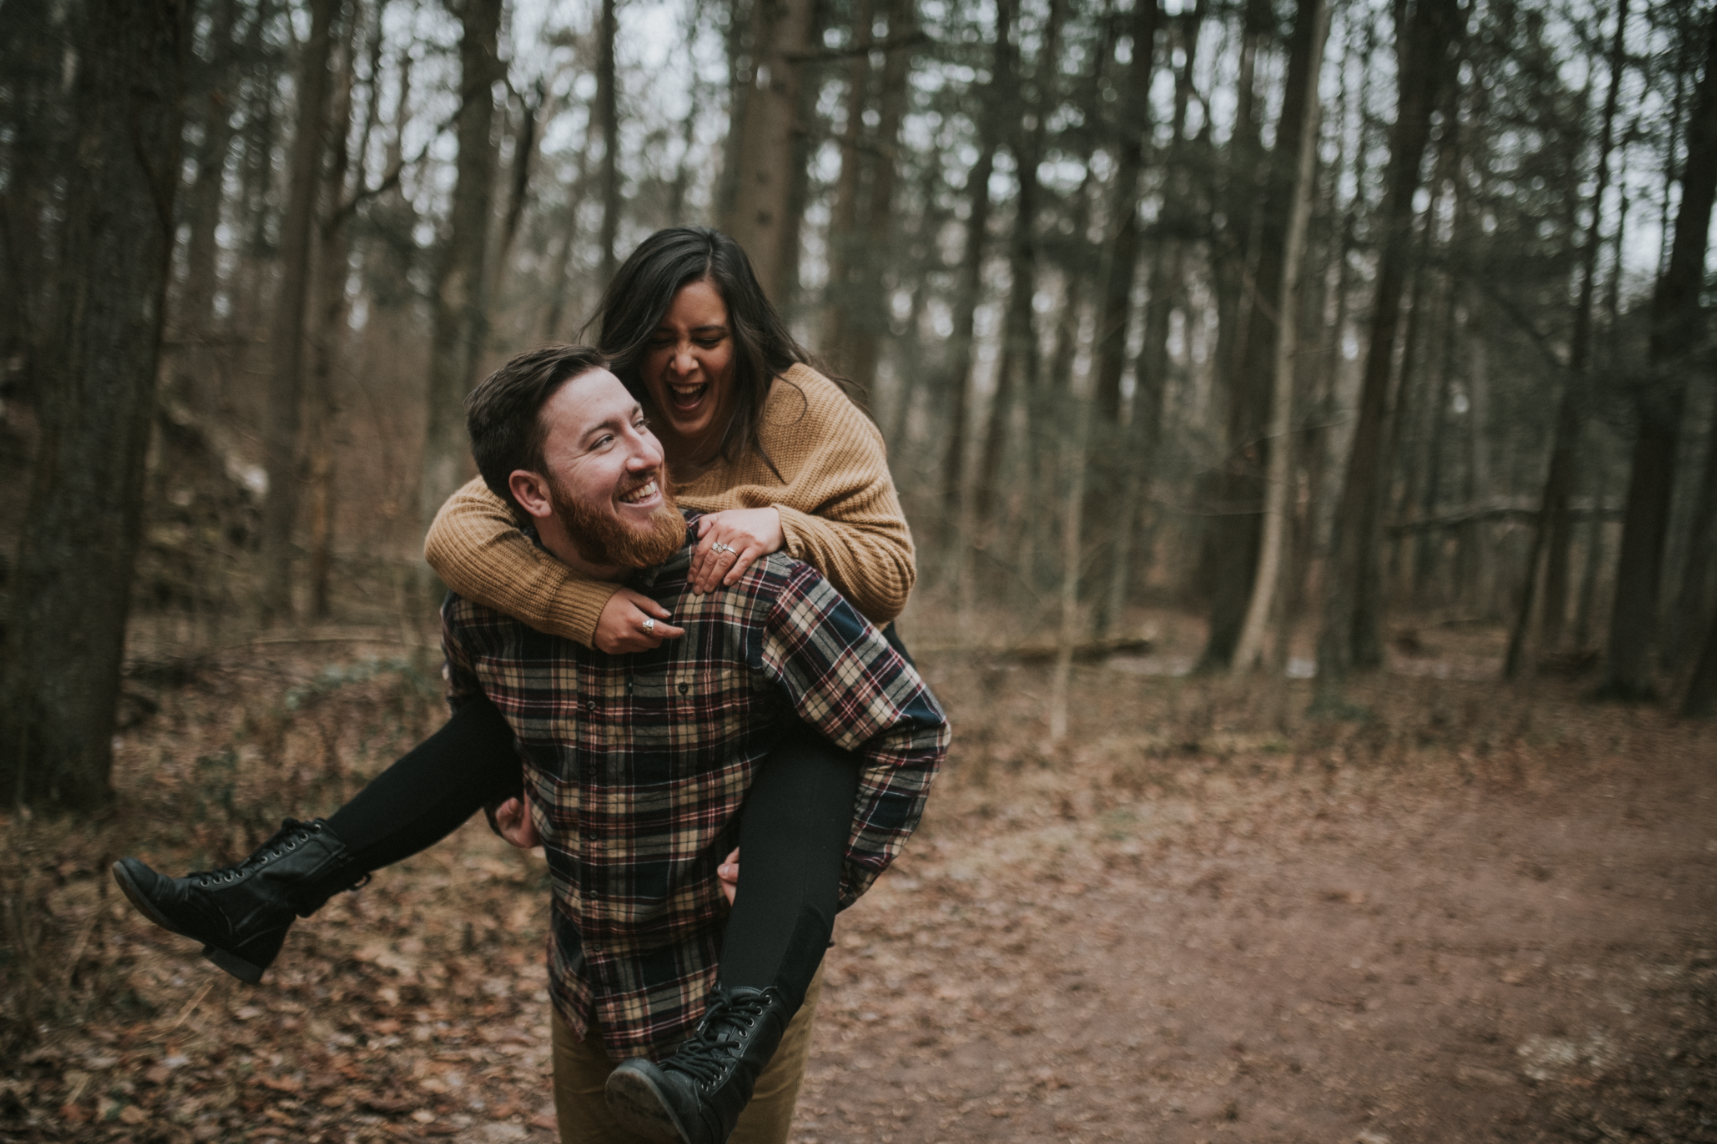 matt-natalia-winter-woods-engagement-session-pennsylvania-wedding-photographer-35